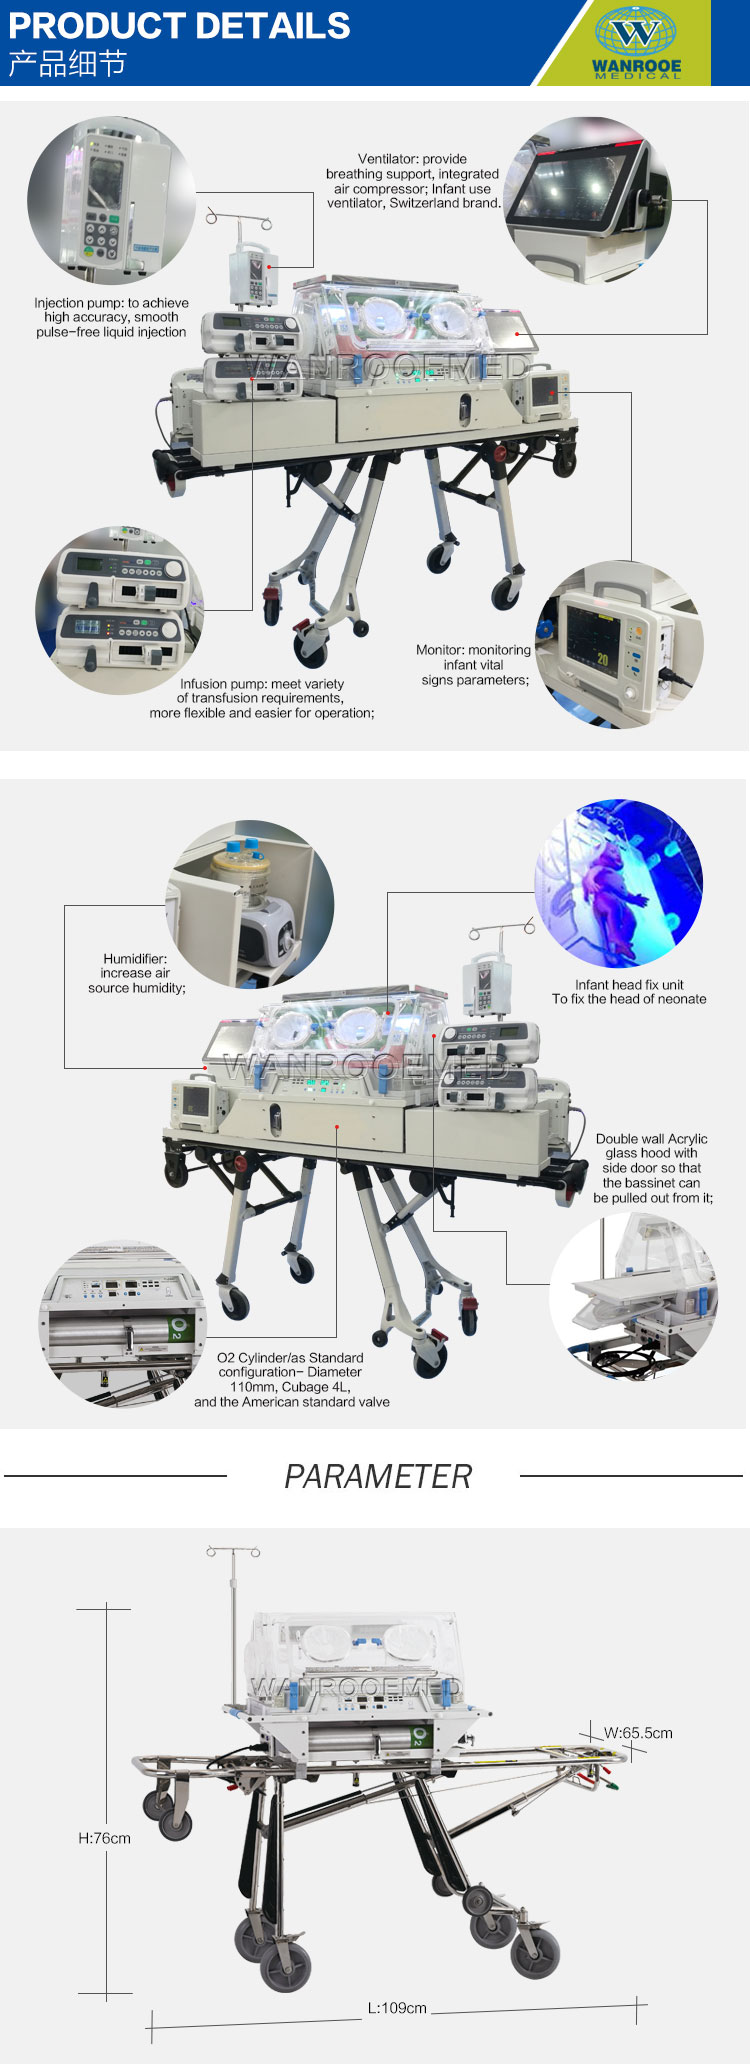 Transport Incubator, Medical Healthcare, Infant Warmer, Baby Incubator, Medical Infant Incubator, Baby Care Infant Incubator